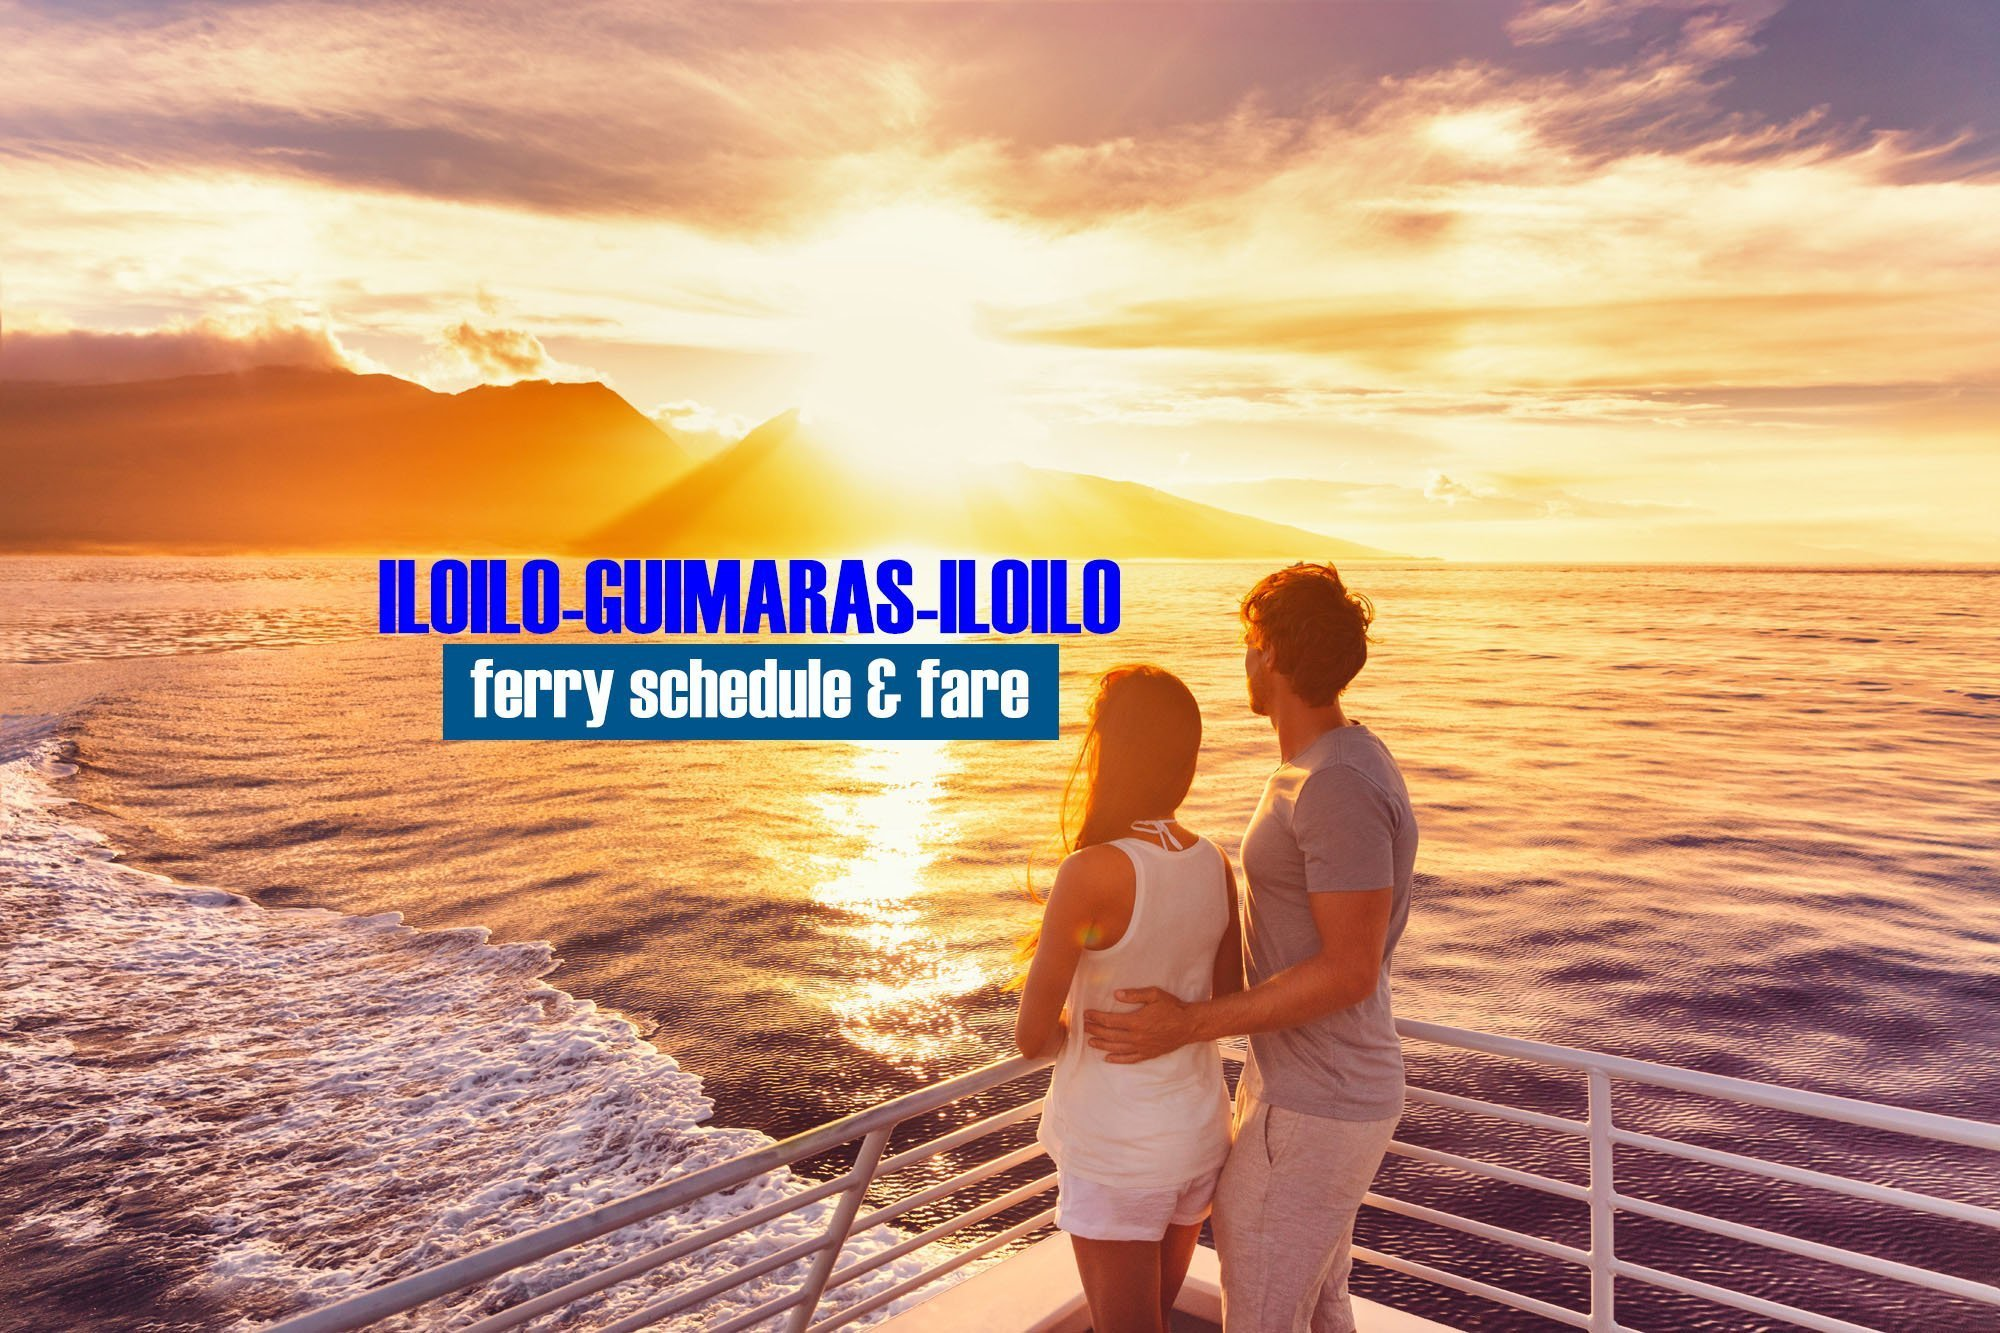 Iloilo to Guimaras: 2019 Ferry Schedule and Fare Rates